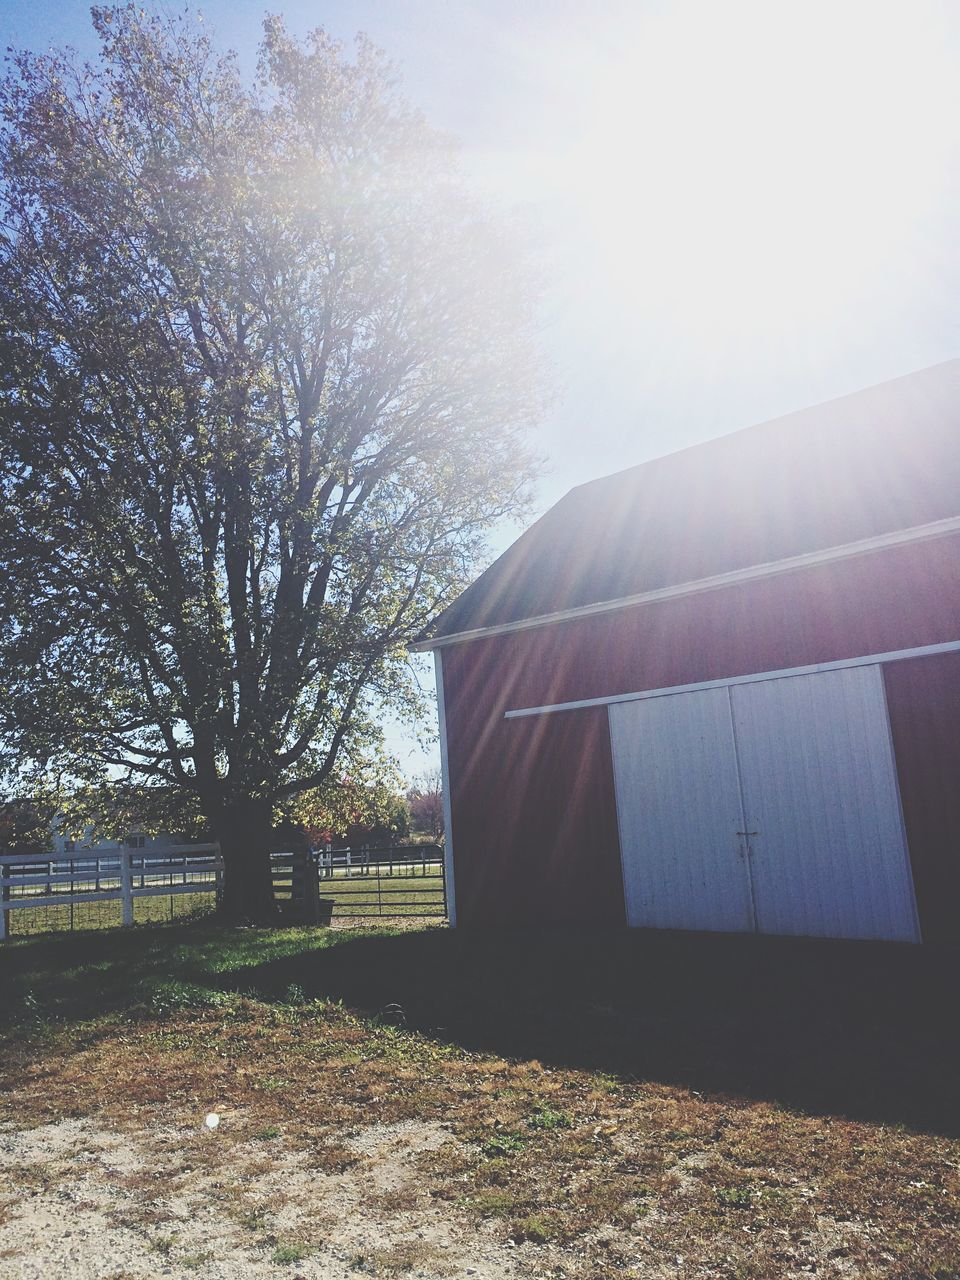 Barn By Tree On Field During Sunny Day